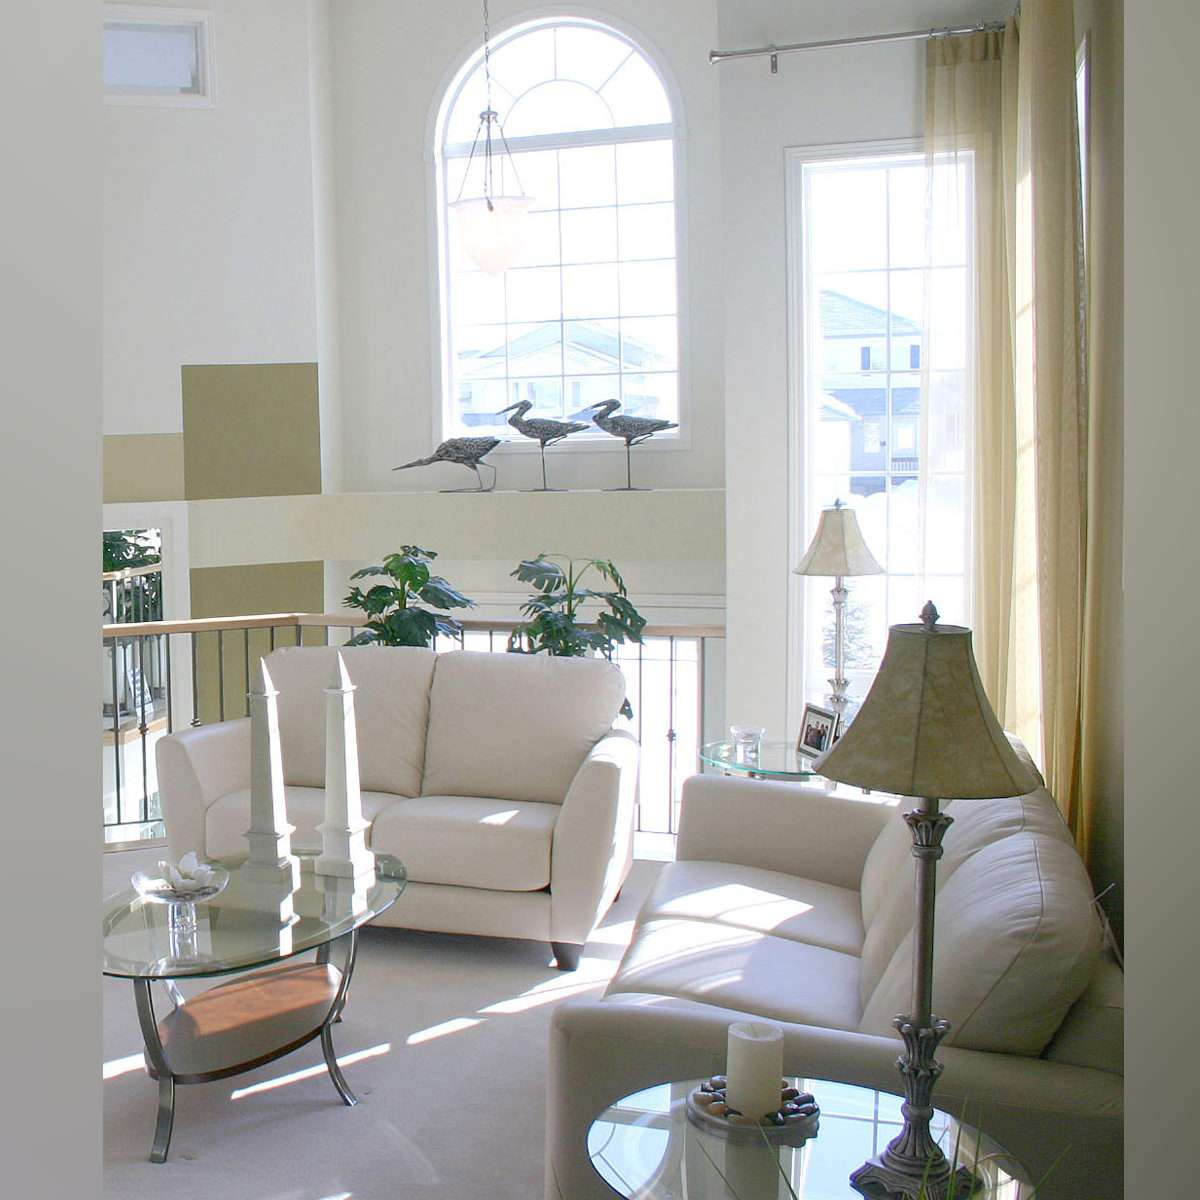 White architectural windows in a white and bright living room with white couches and a golden lamp.